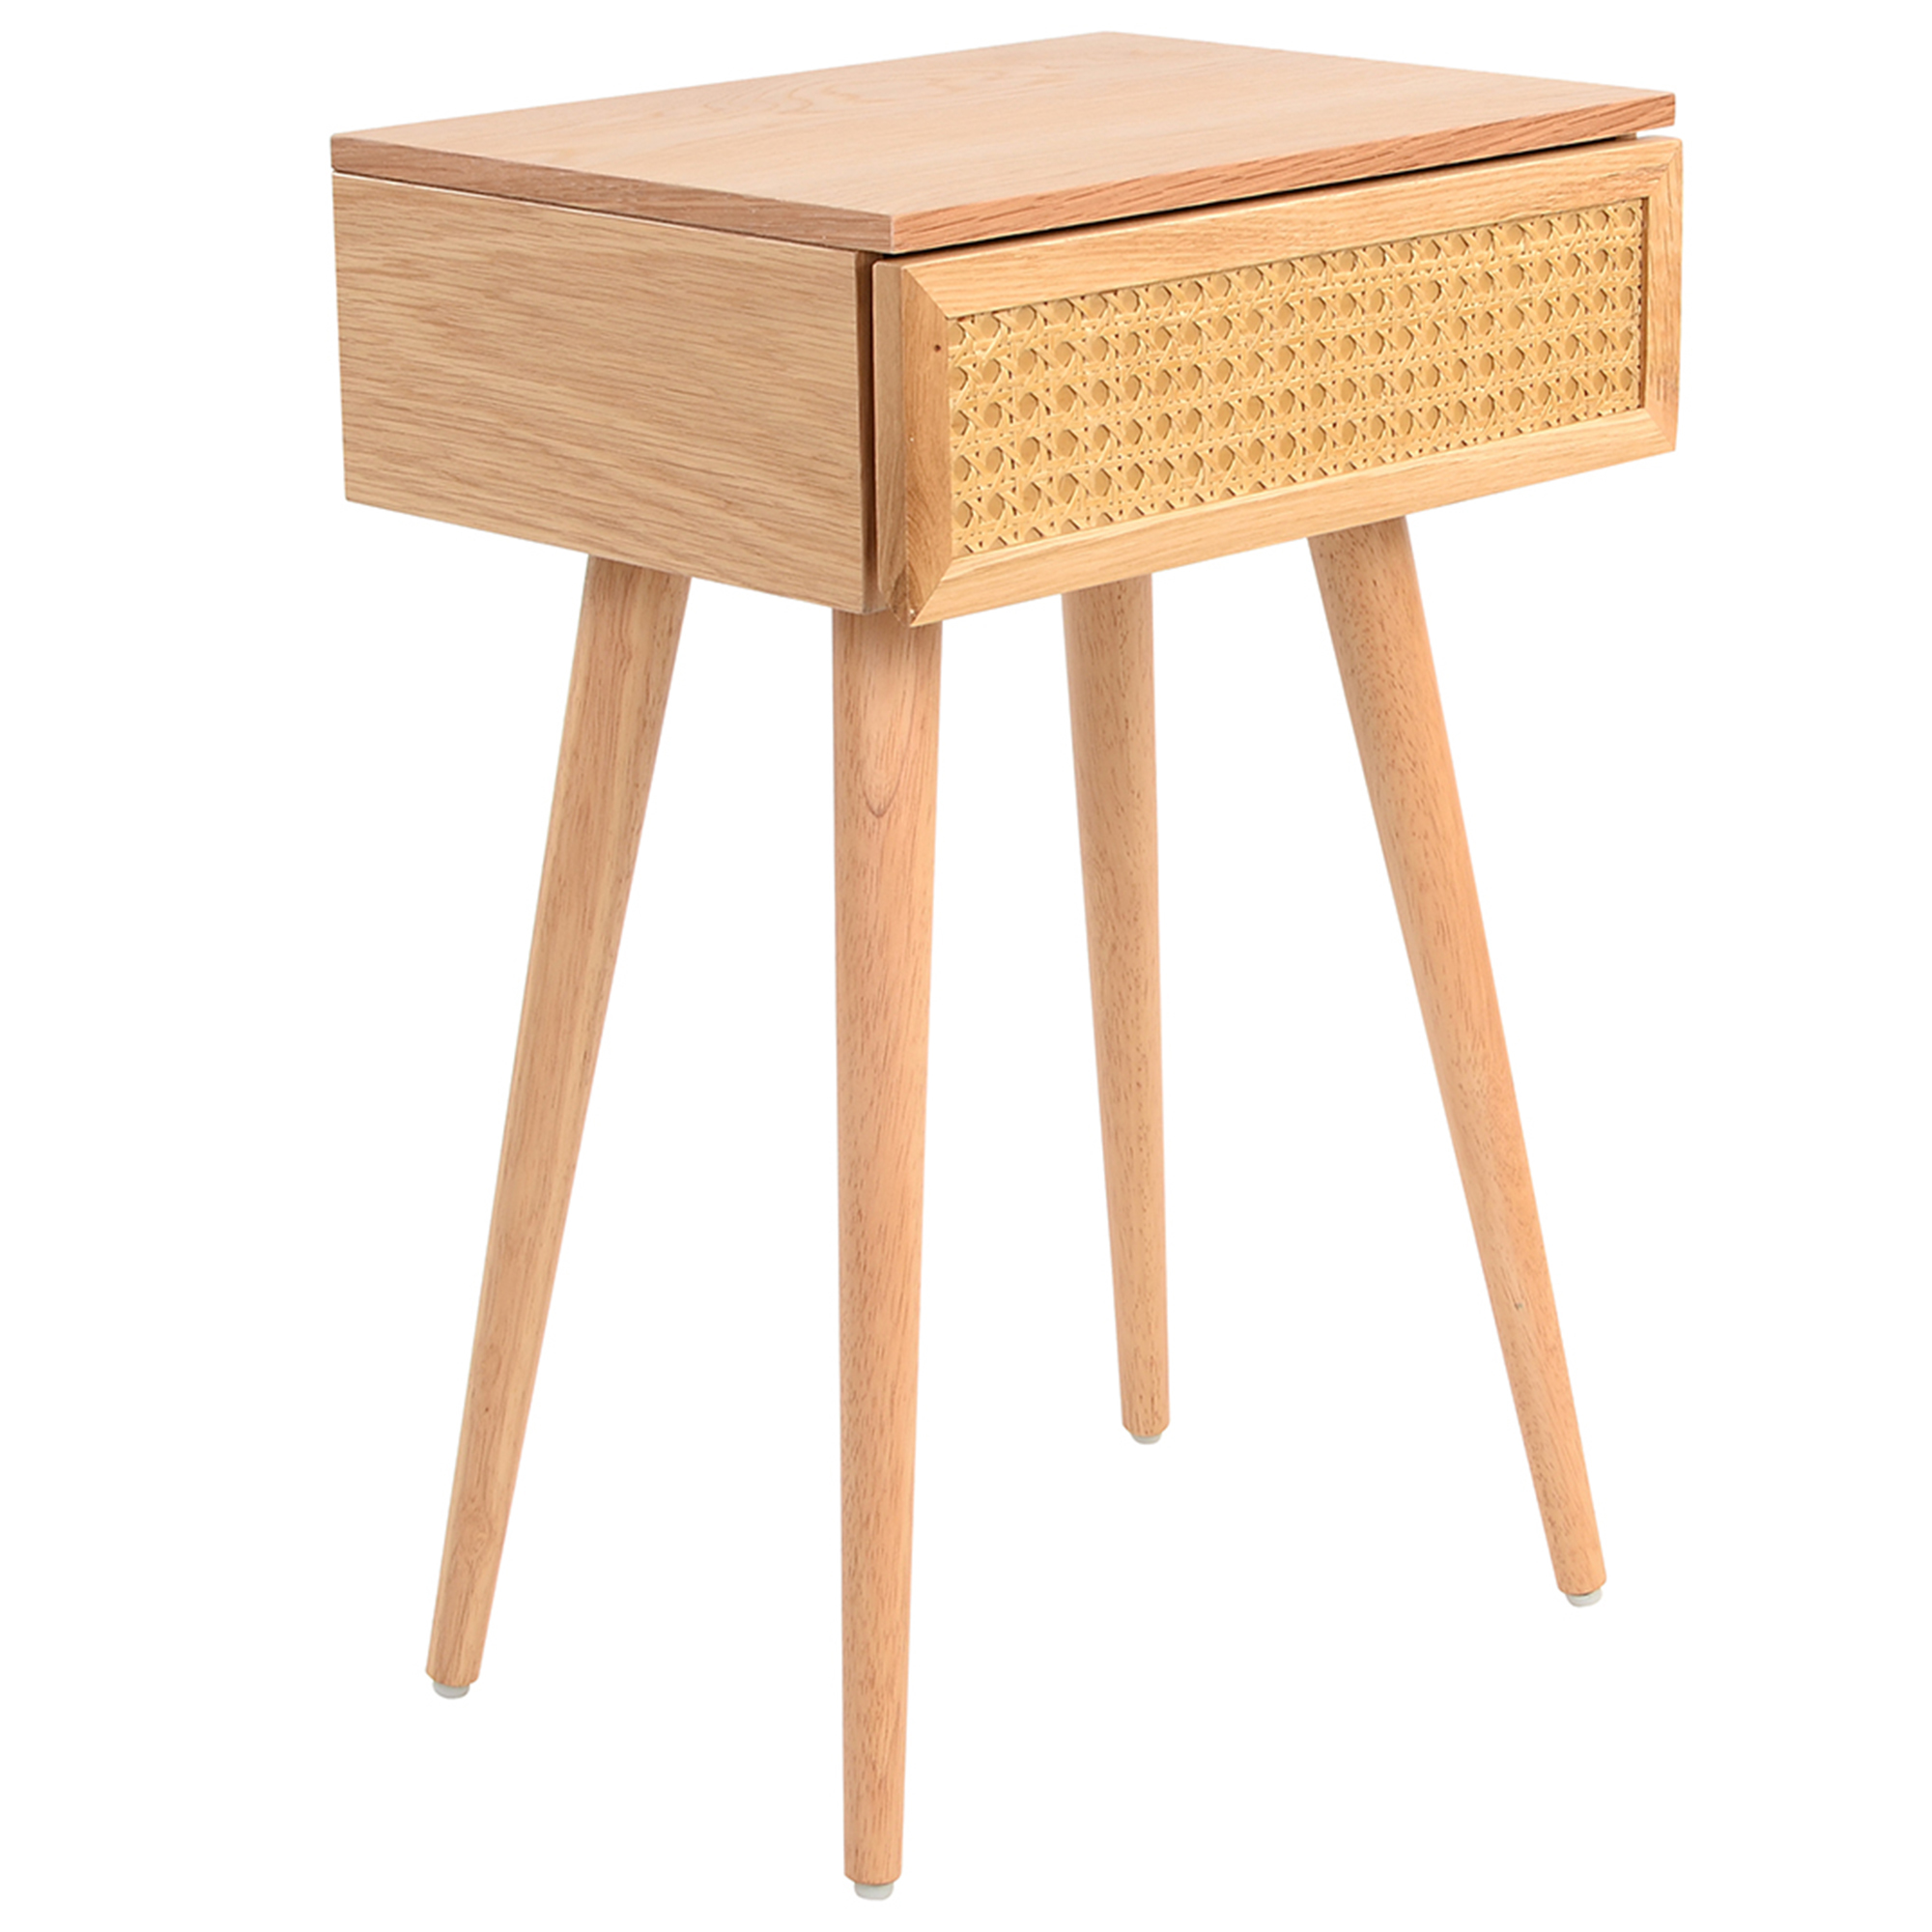 Light Oak Daintree Rattan Bedside Table